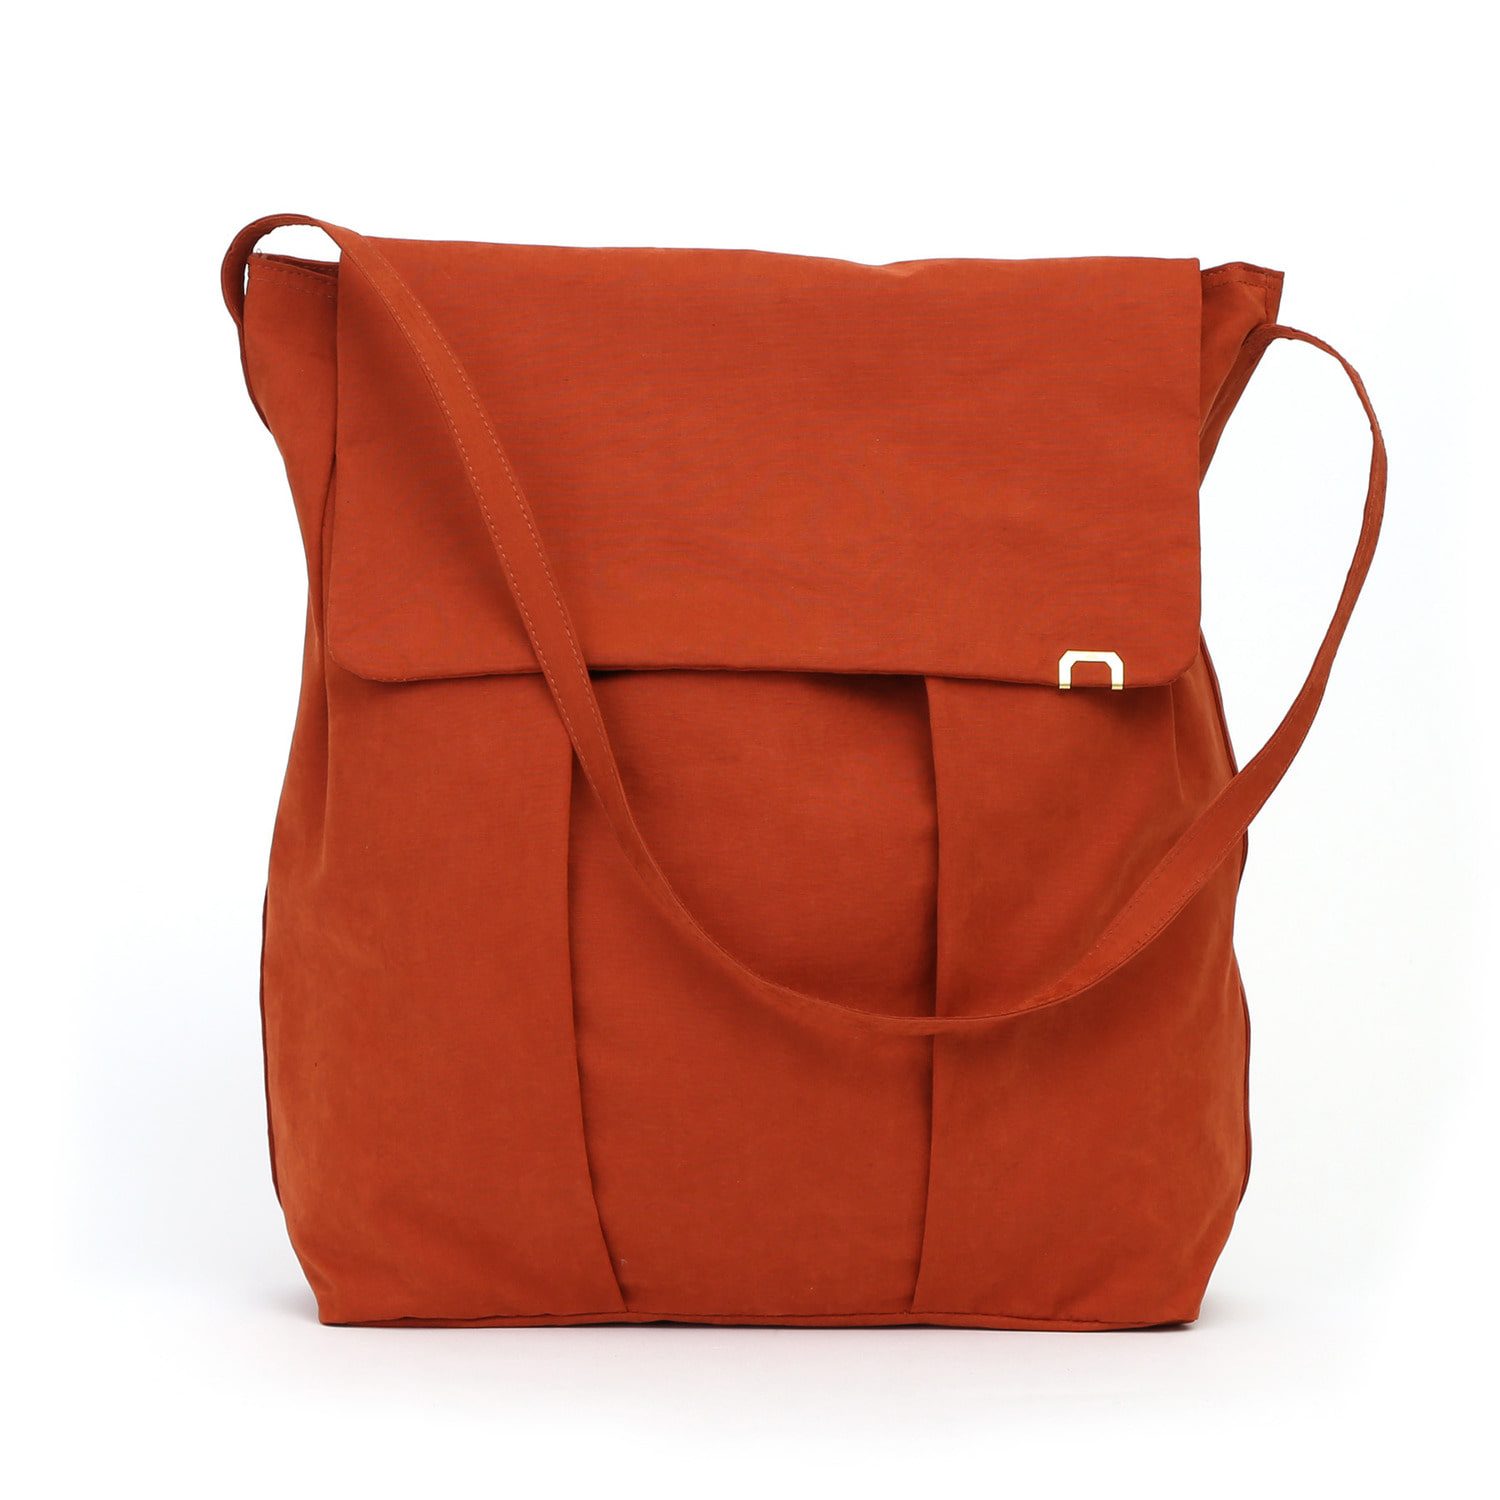 LADDER BAG / WRINKLE / NPC / BRICK ORANGE